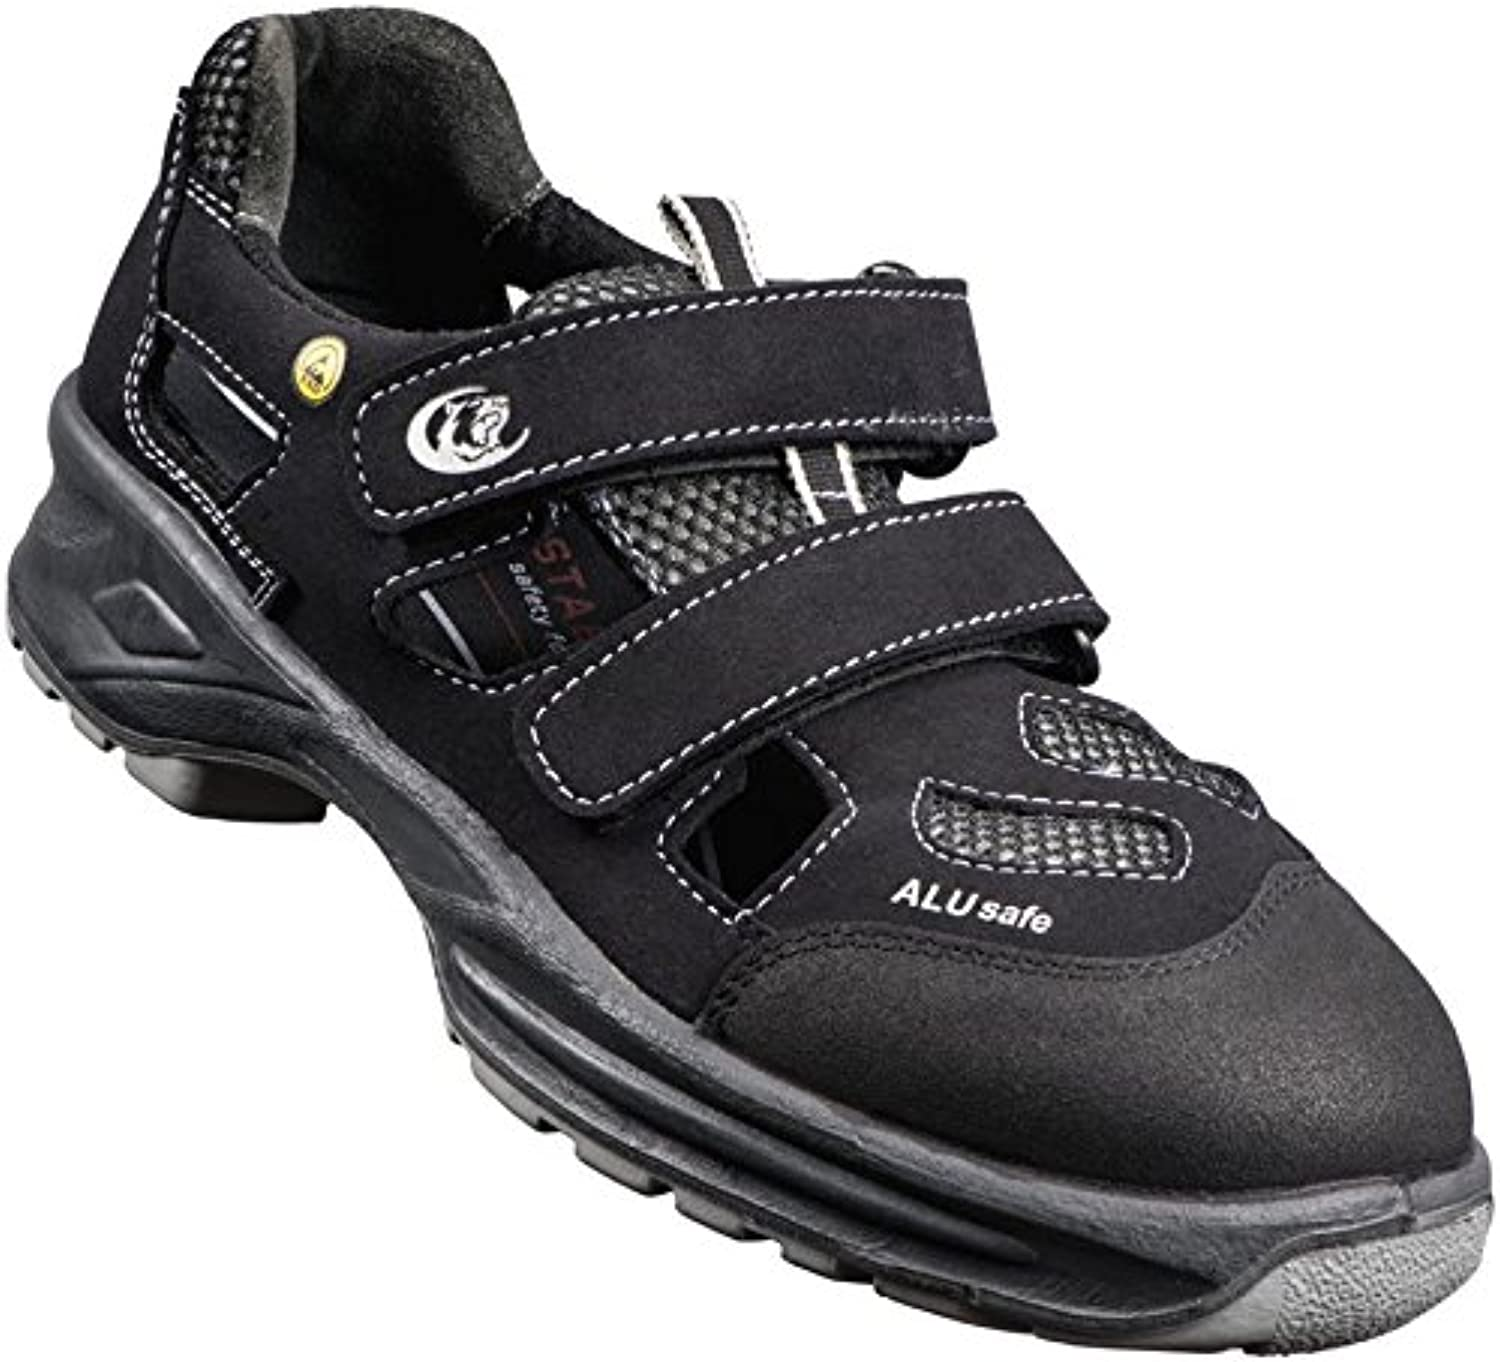 Stabilus Unisex Adults' 2124a Safety shoes